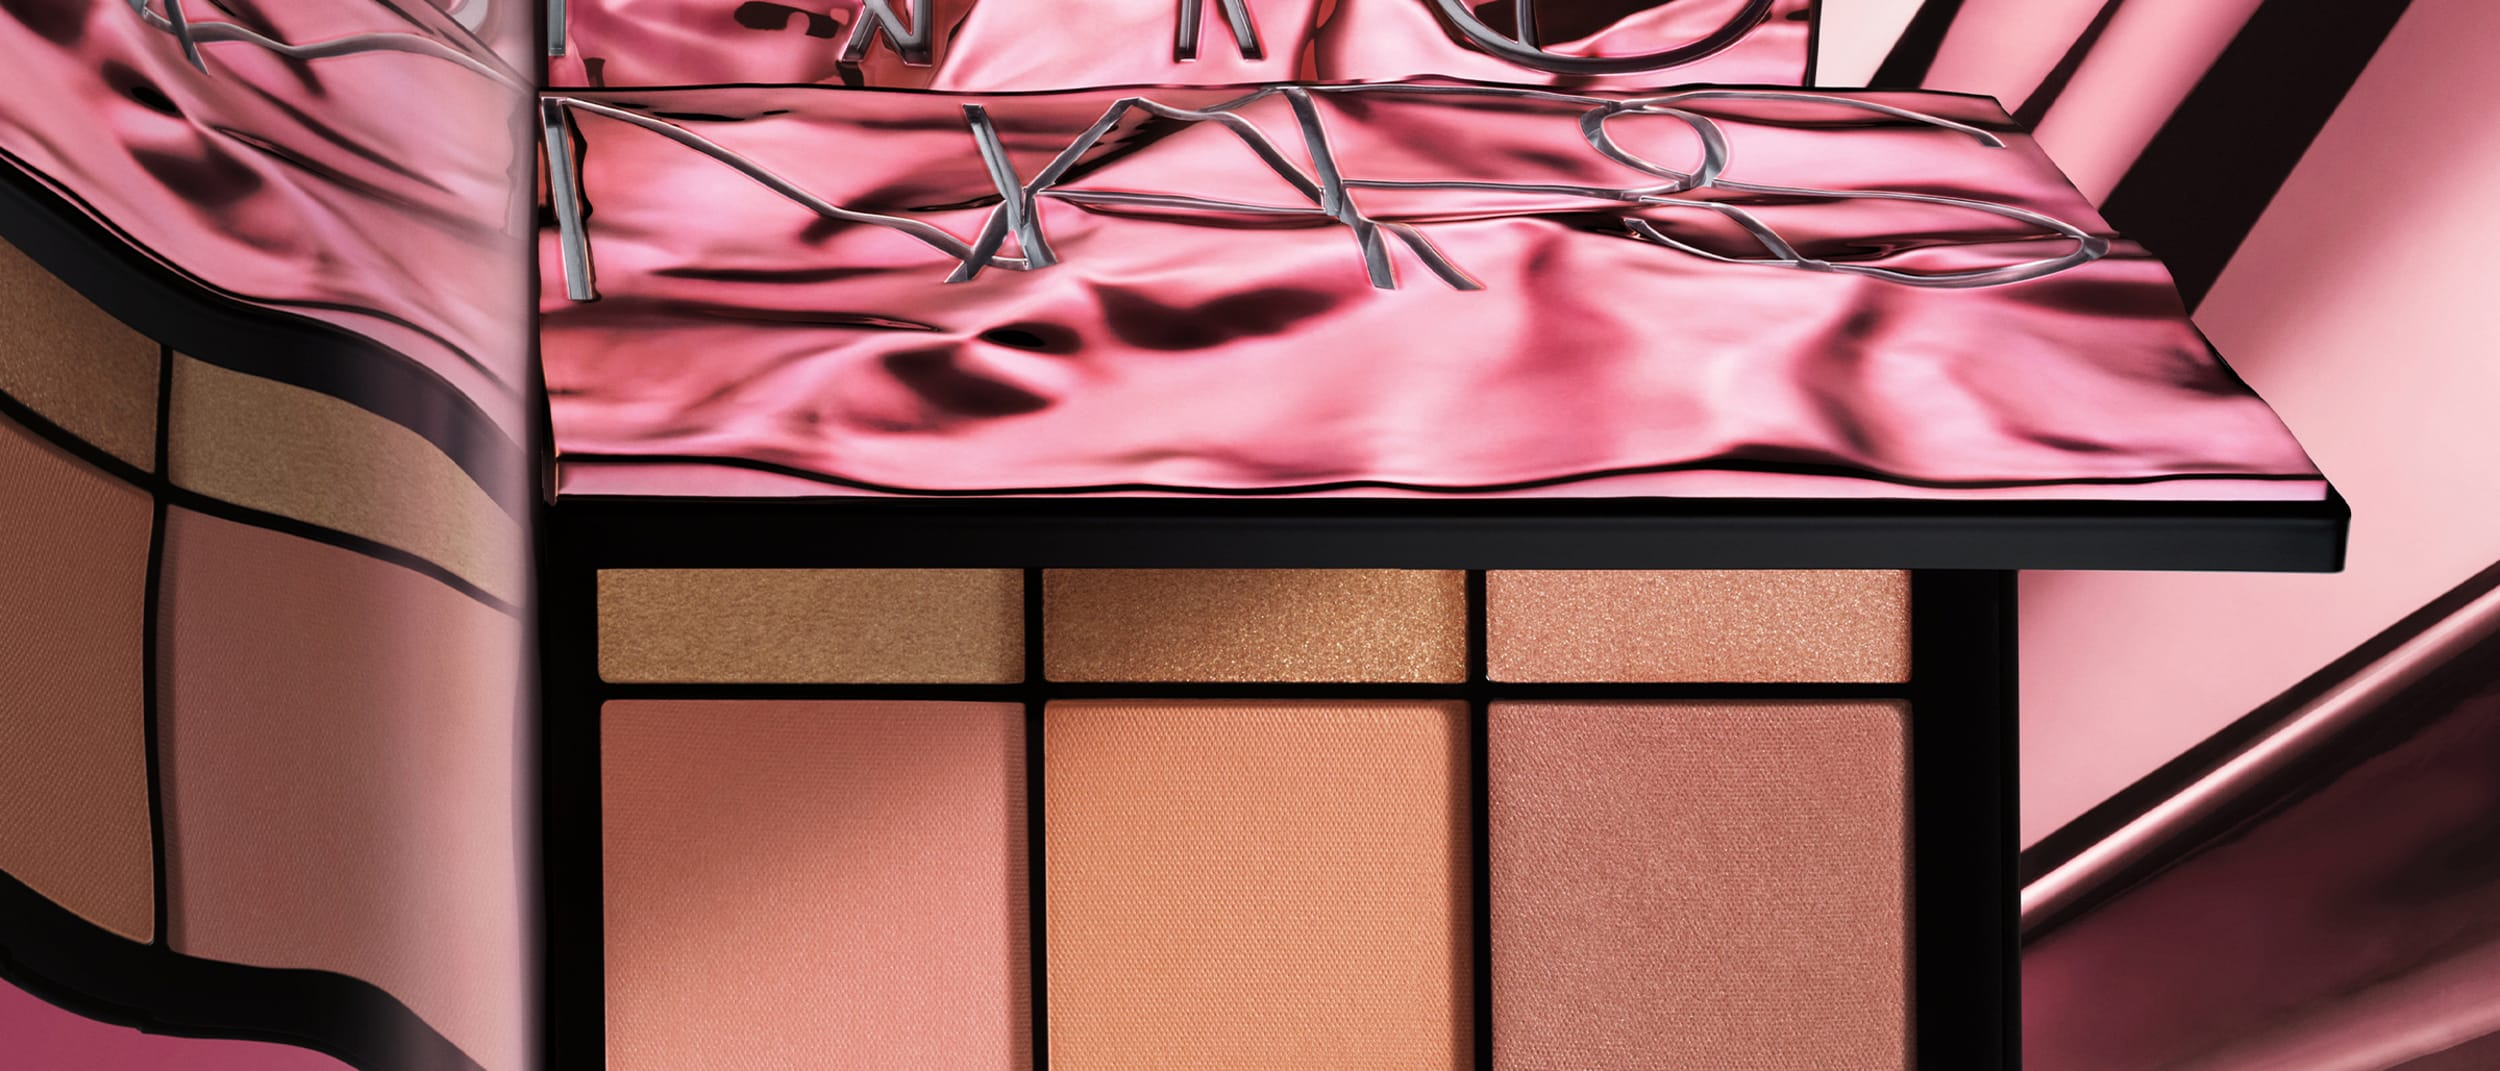 MECCA: New from NARS, the Afterglow Collection has arrived